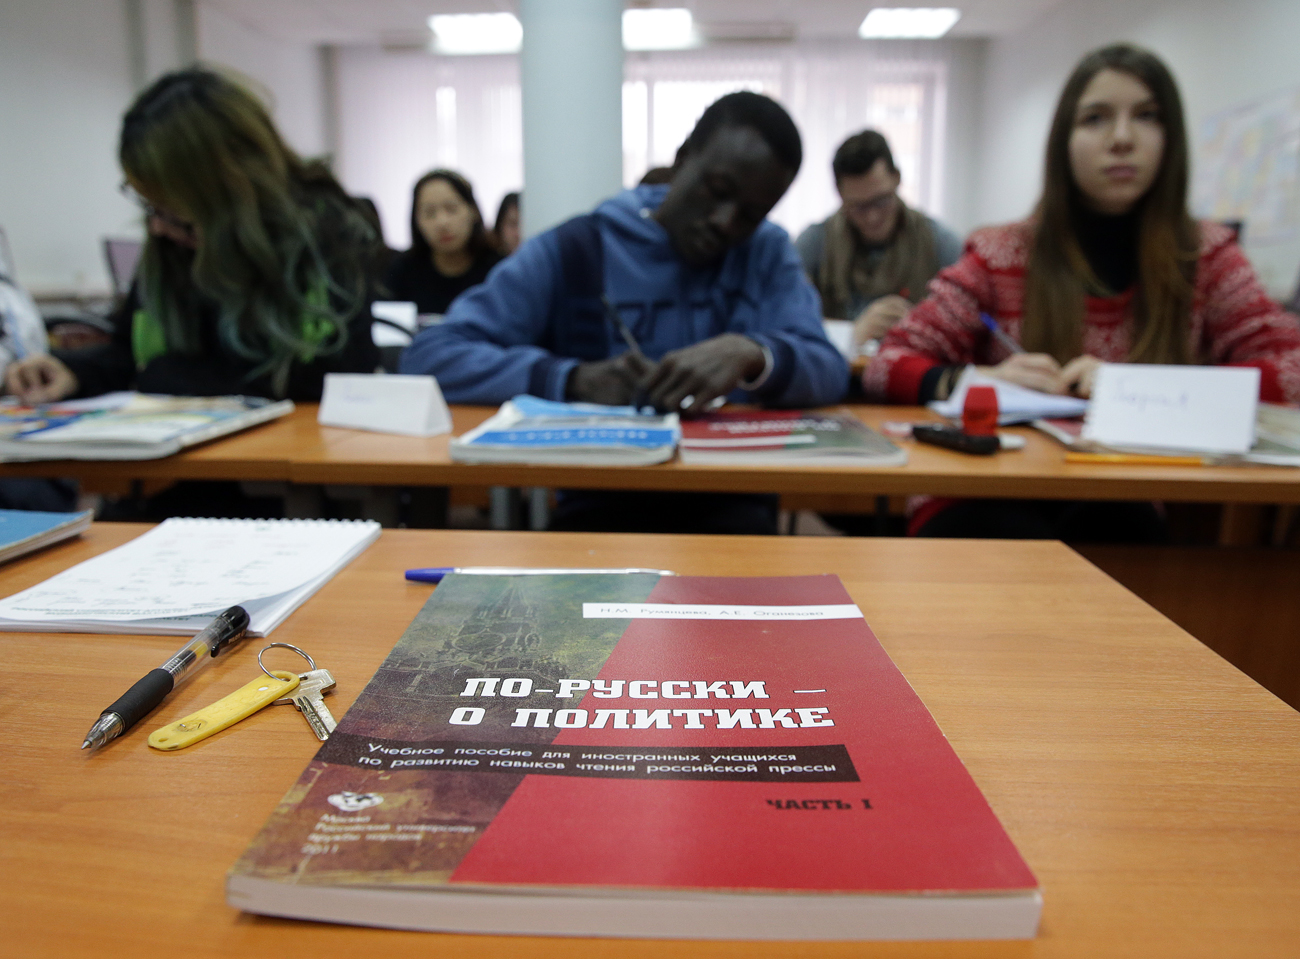 According to the Russian Ministry of Education and Science, there are more than 1 million people from 160 countries who have graduated from Russian universities. Photo: Russian language classes at the Peoples' Friendship University in Moscow.